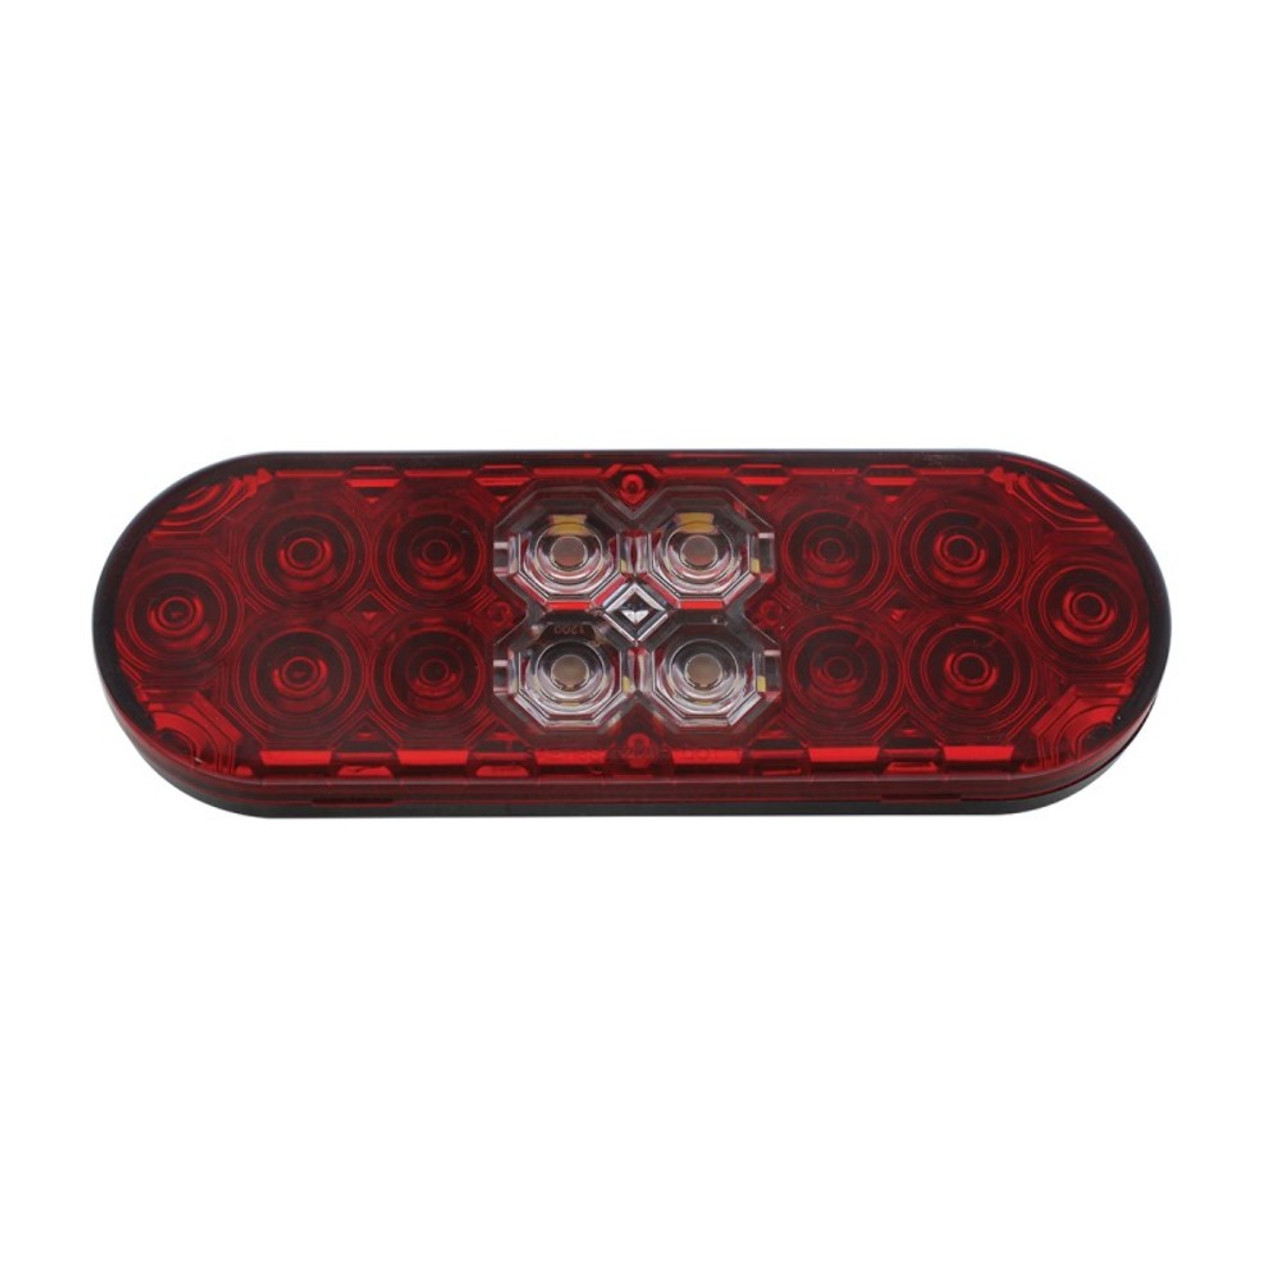 "6"" Oval Combo Light with 14 LED S/T/T Light & 16 LED Back-Up Light - Red Lens"